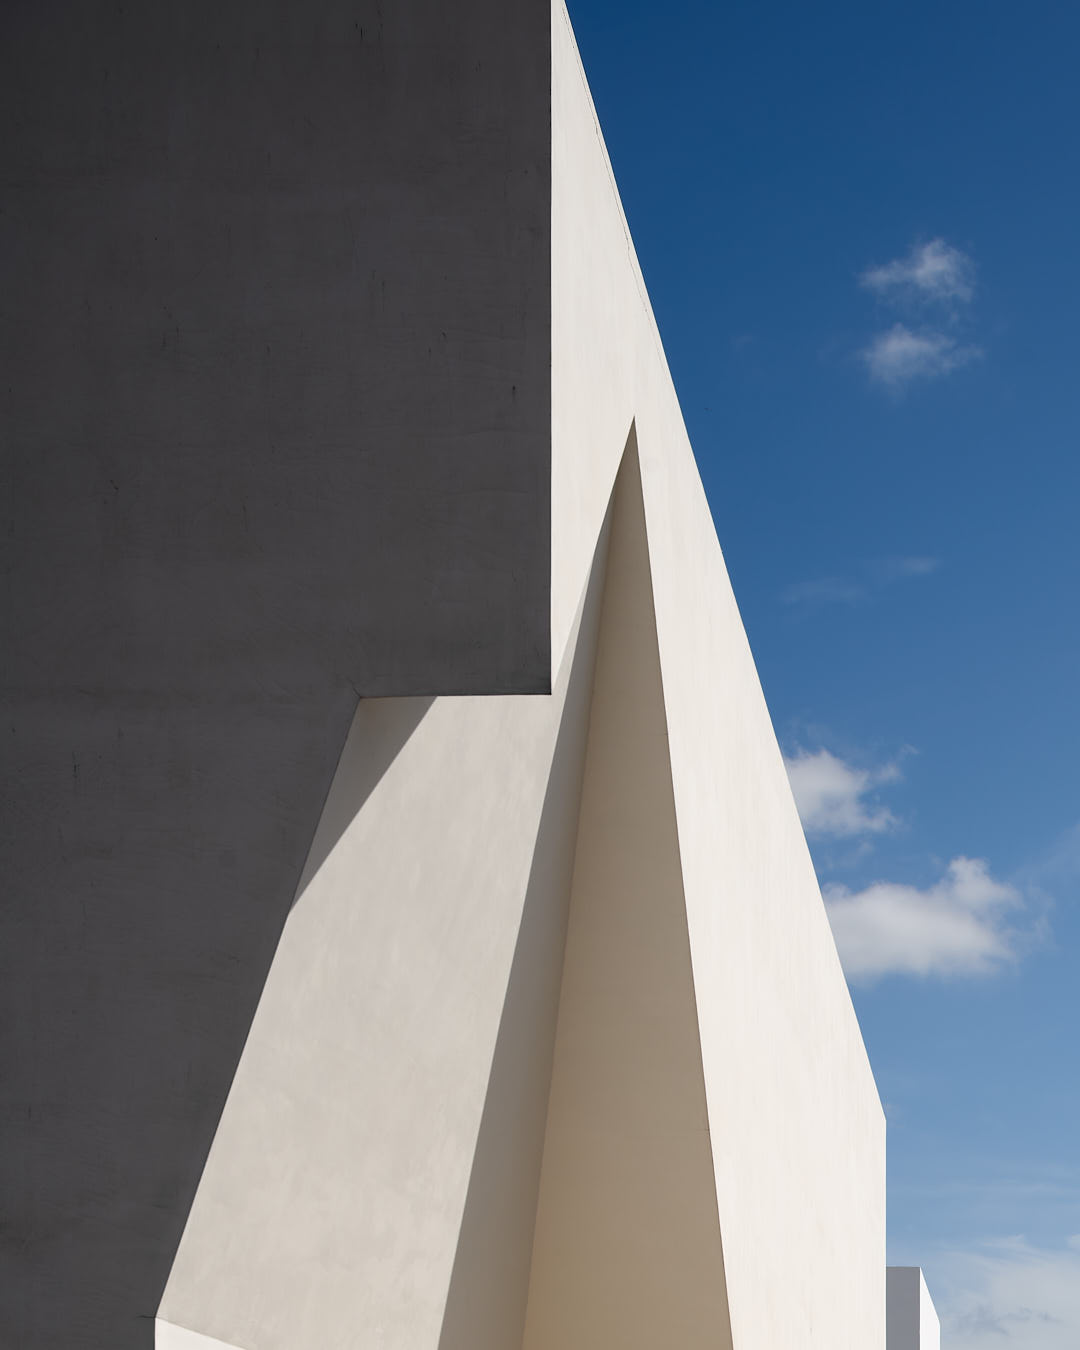 Geometric details of the Granola community centre by Aires Mateus